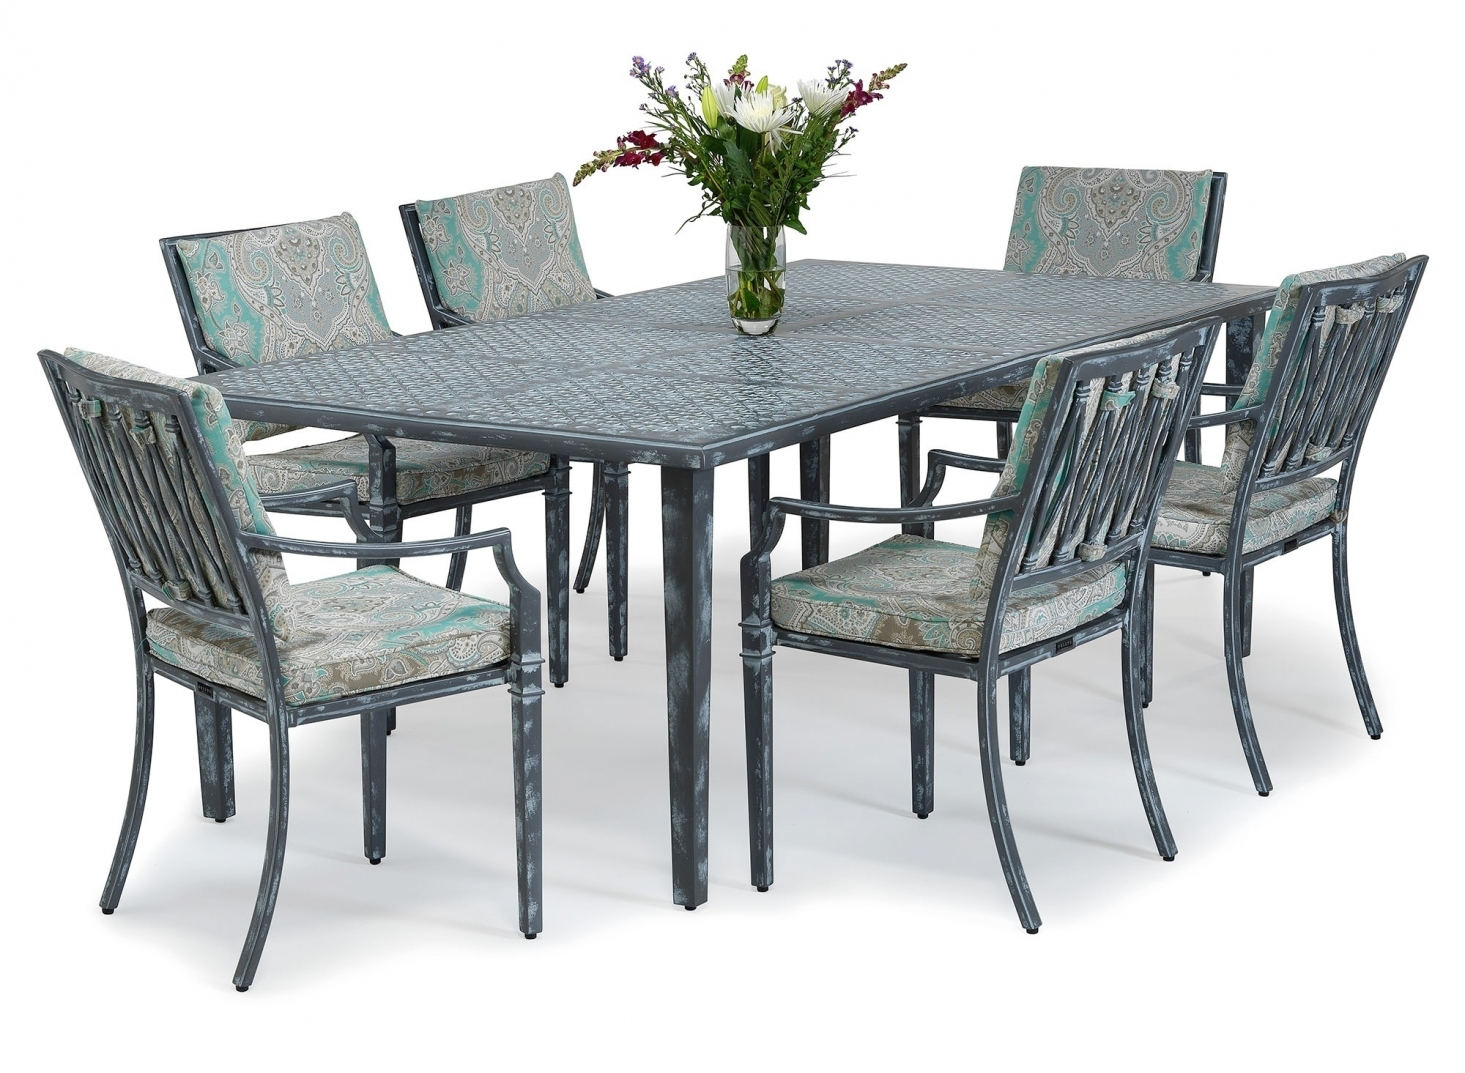 Sienna Metal Outdoor Dining Set, Metal Outdoor Furniture From Inside Newest Outdoor Sienna Dining Tables (View 8 of 20)